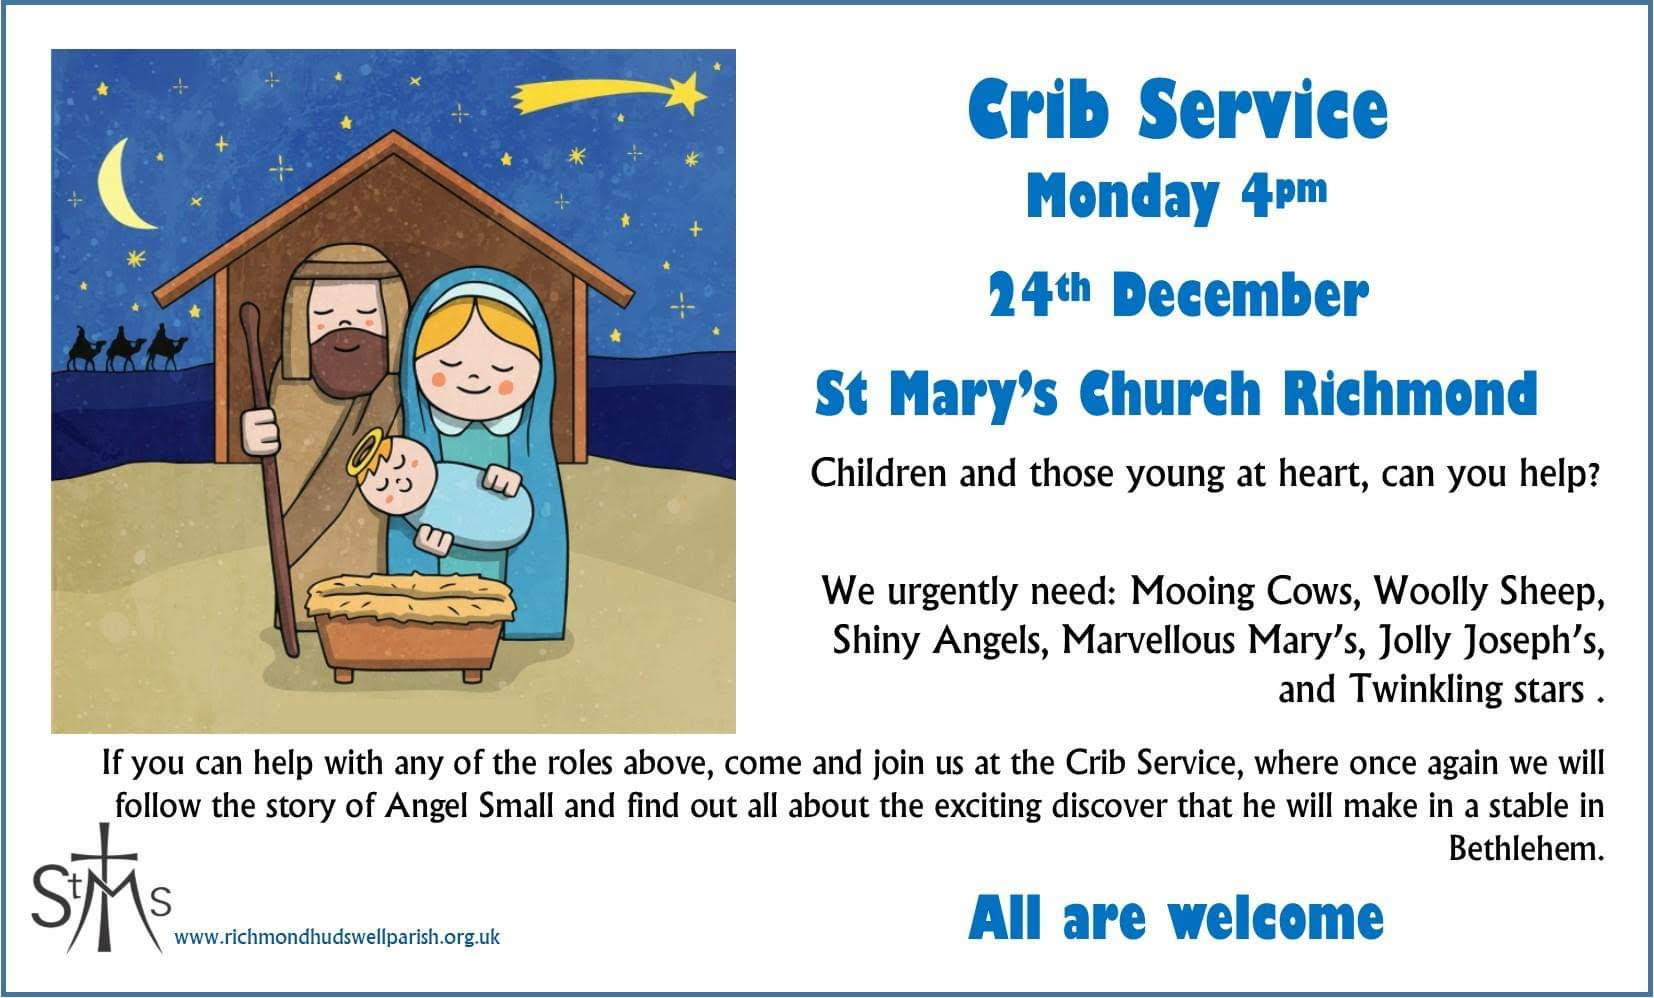 Crib Service at St Mary's